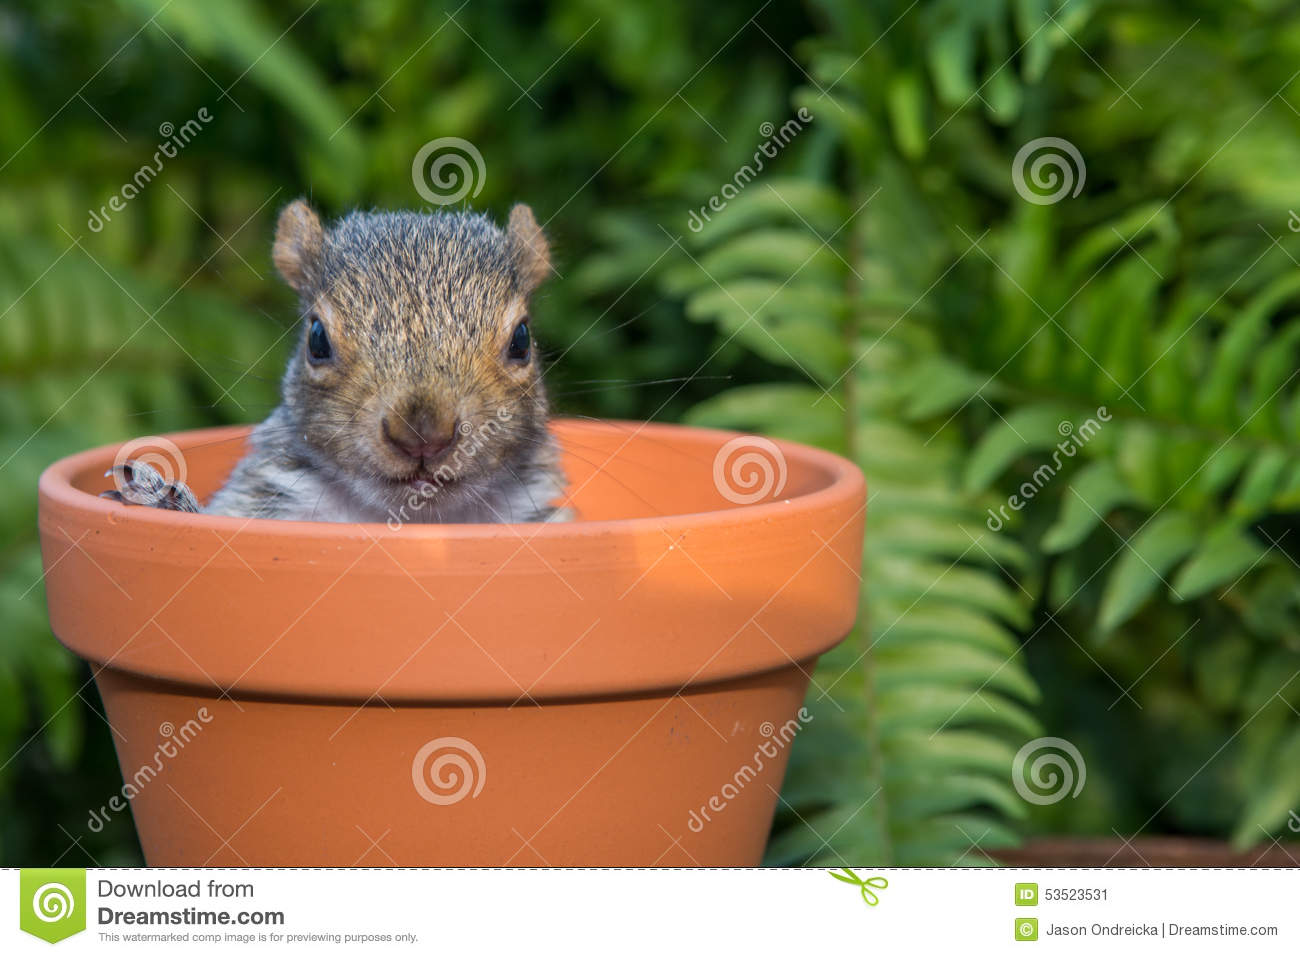 Bébé Gray Squirrel